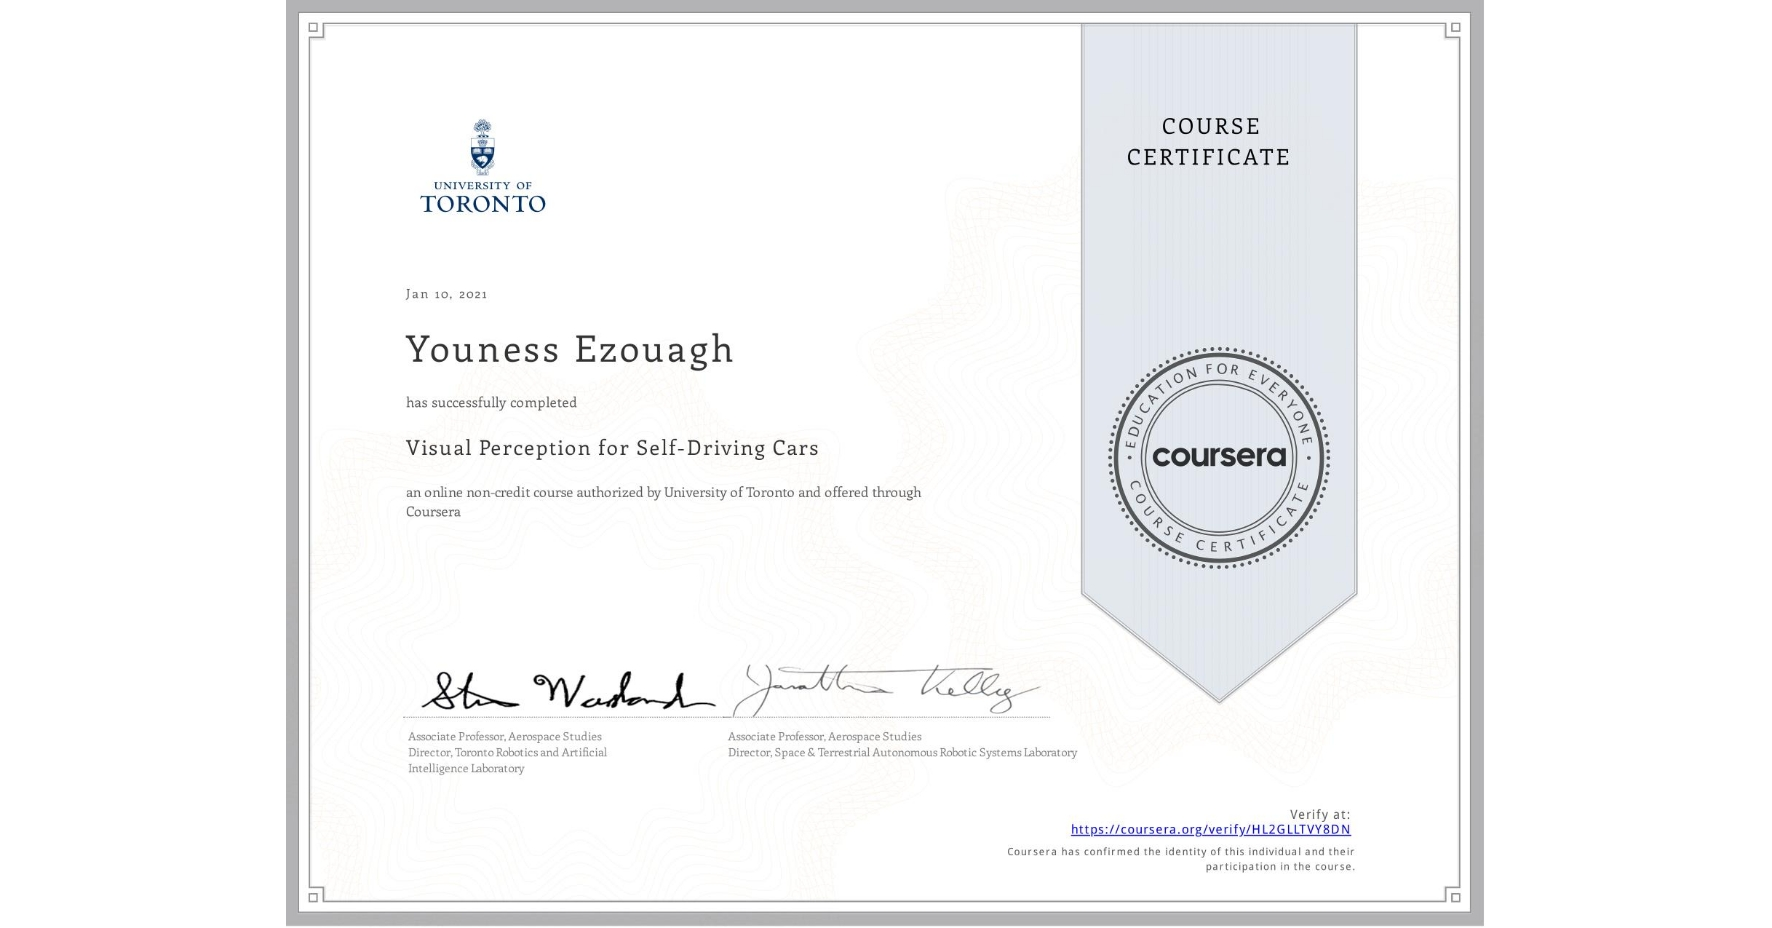 View certificate for Youness Ezouagh, Visual Perception for Self-Driving Cars, an online non-credit course authorized by University of Toronto and offered through Coursera